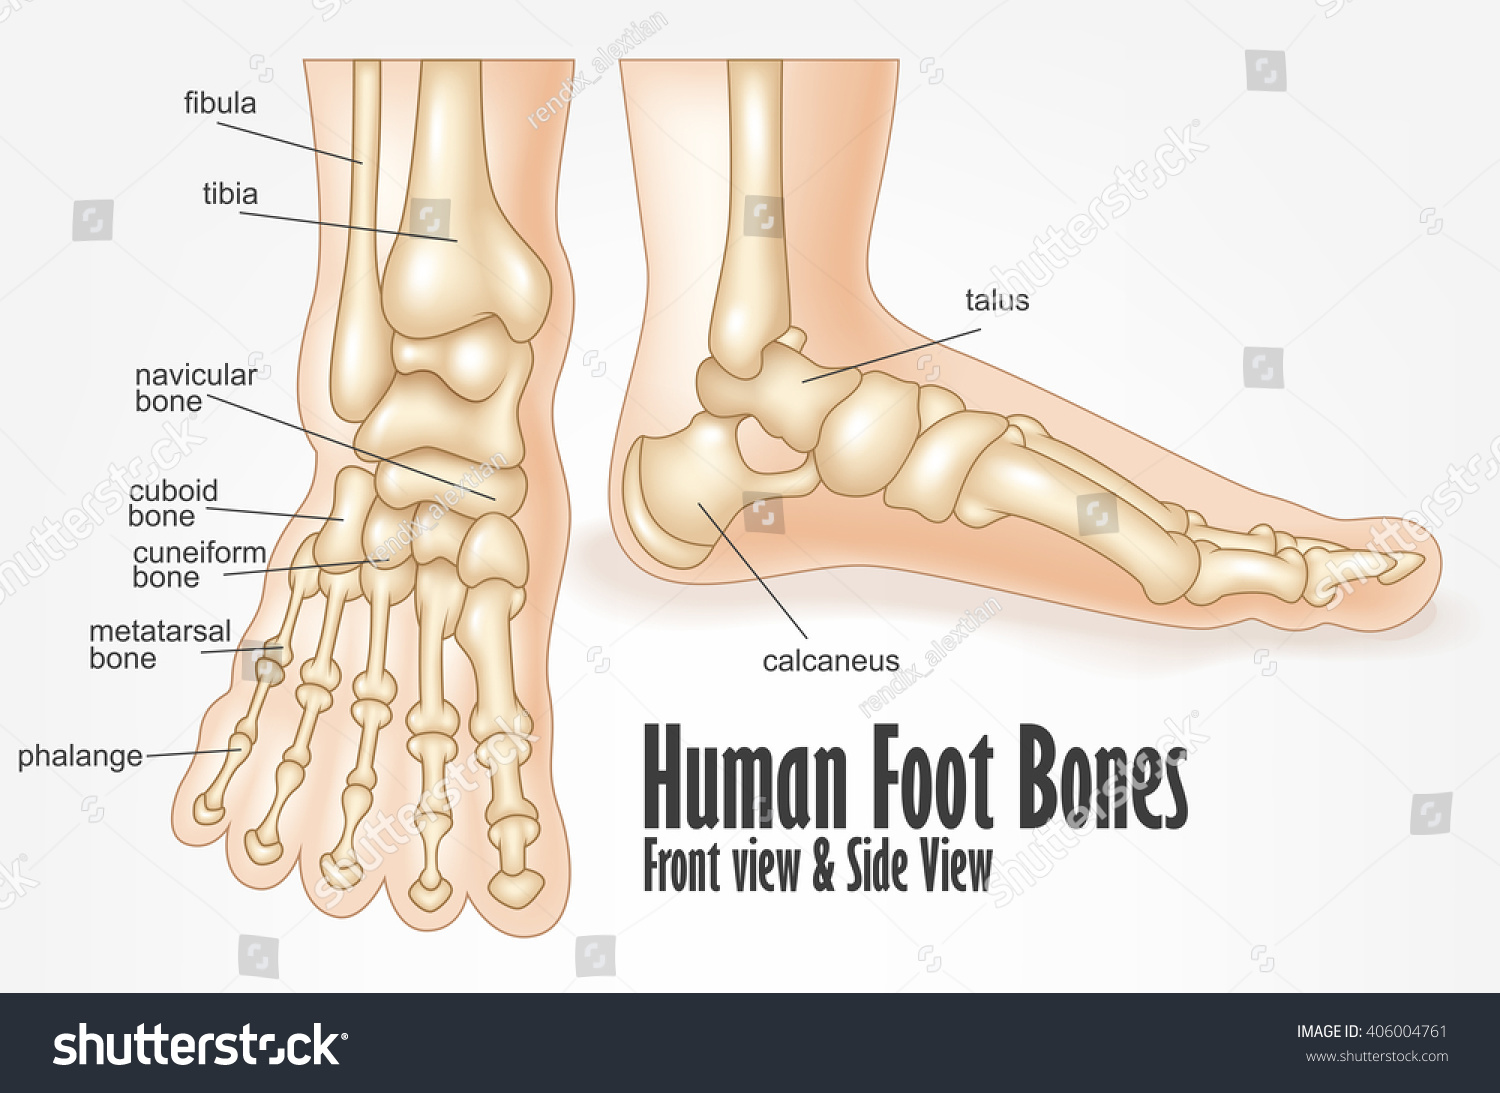 Human Foot Bones Front Side View Stock Vector (Royalty Free ...